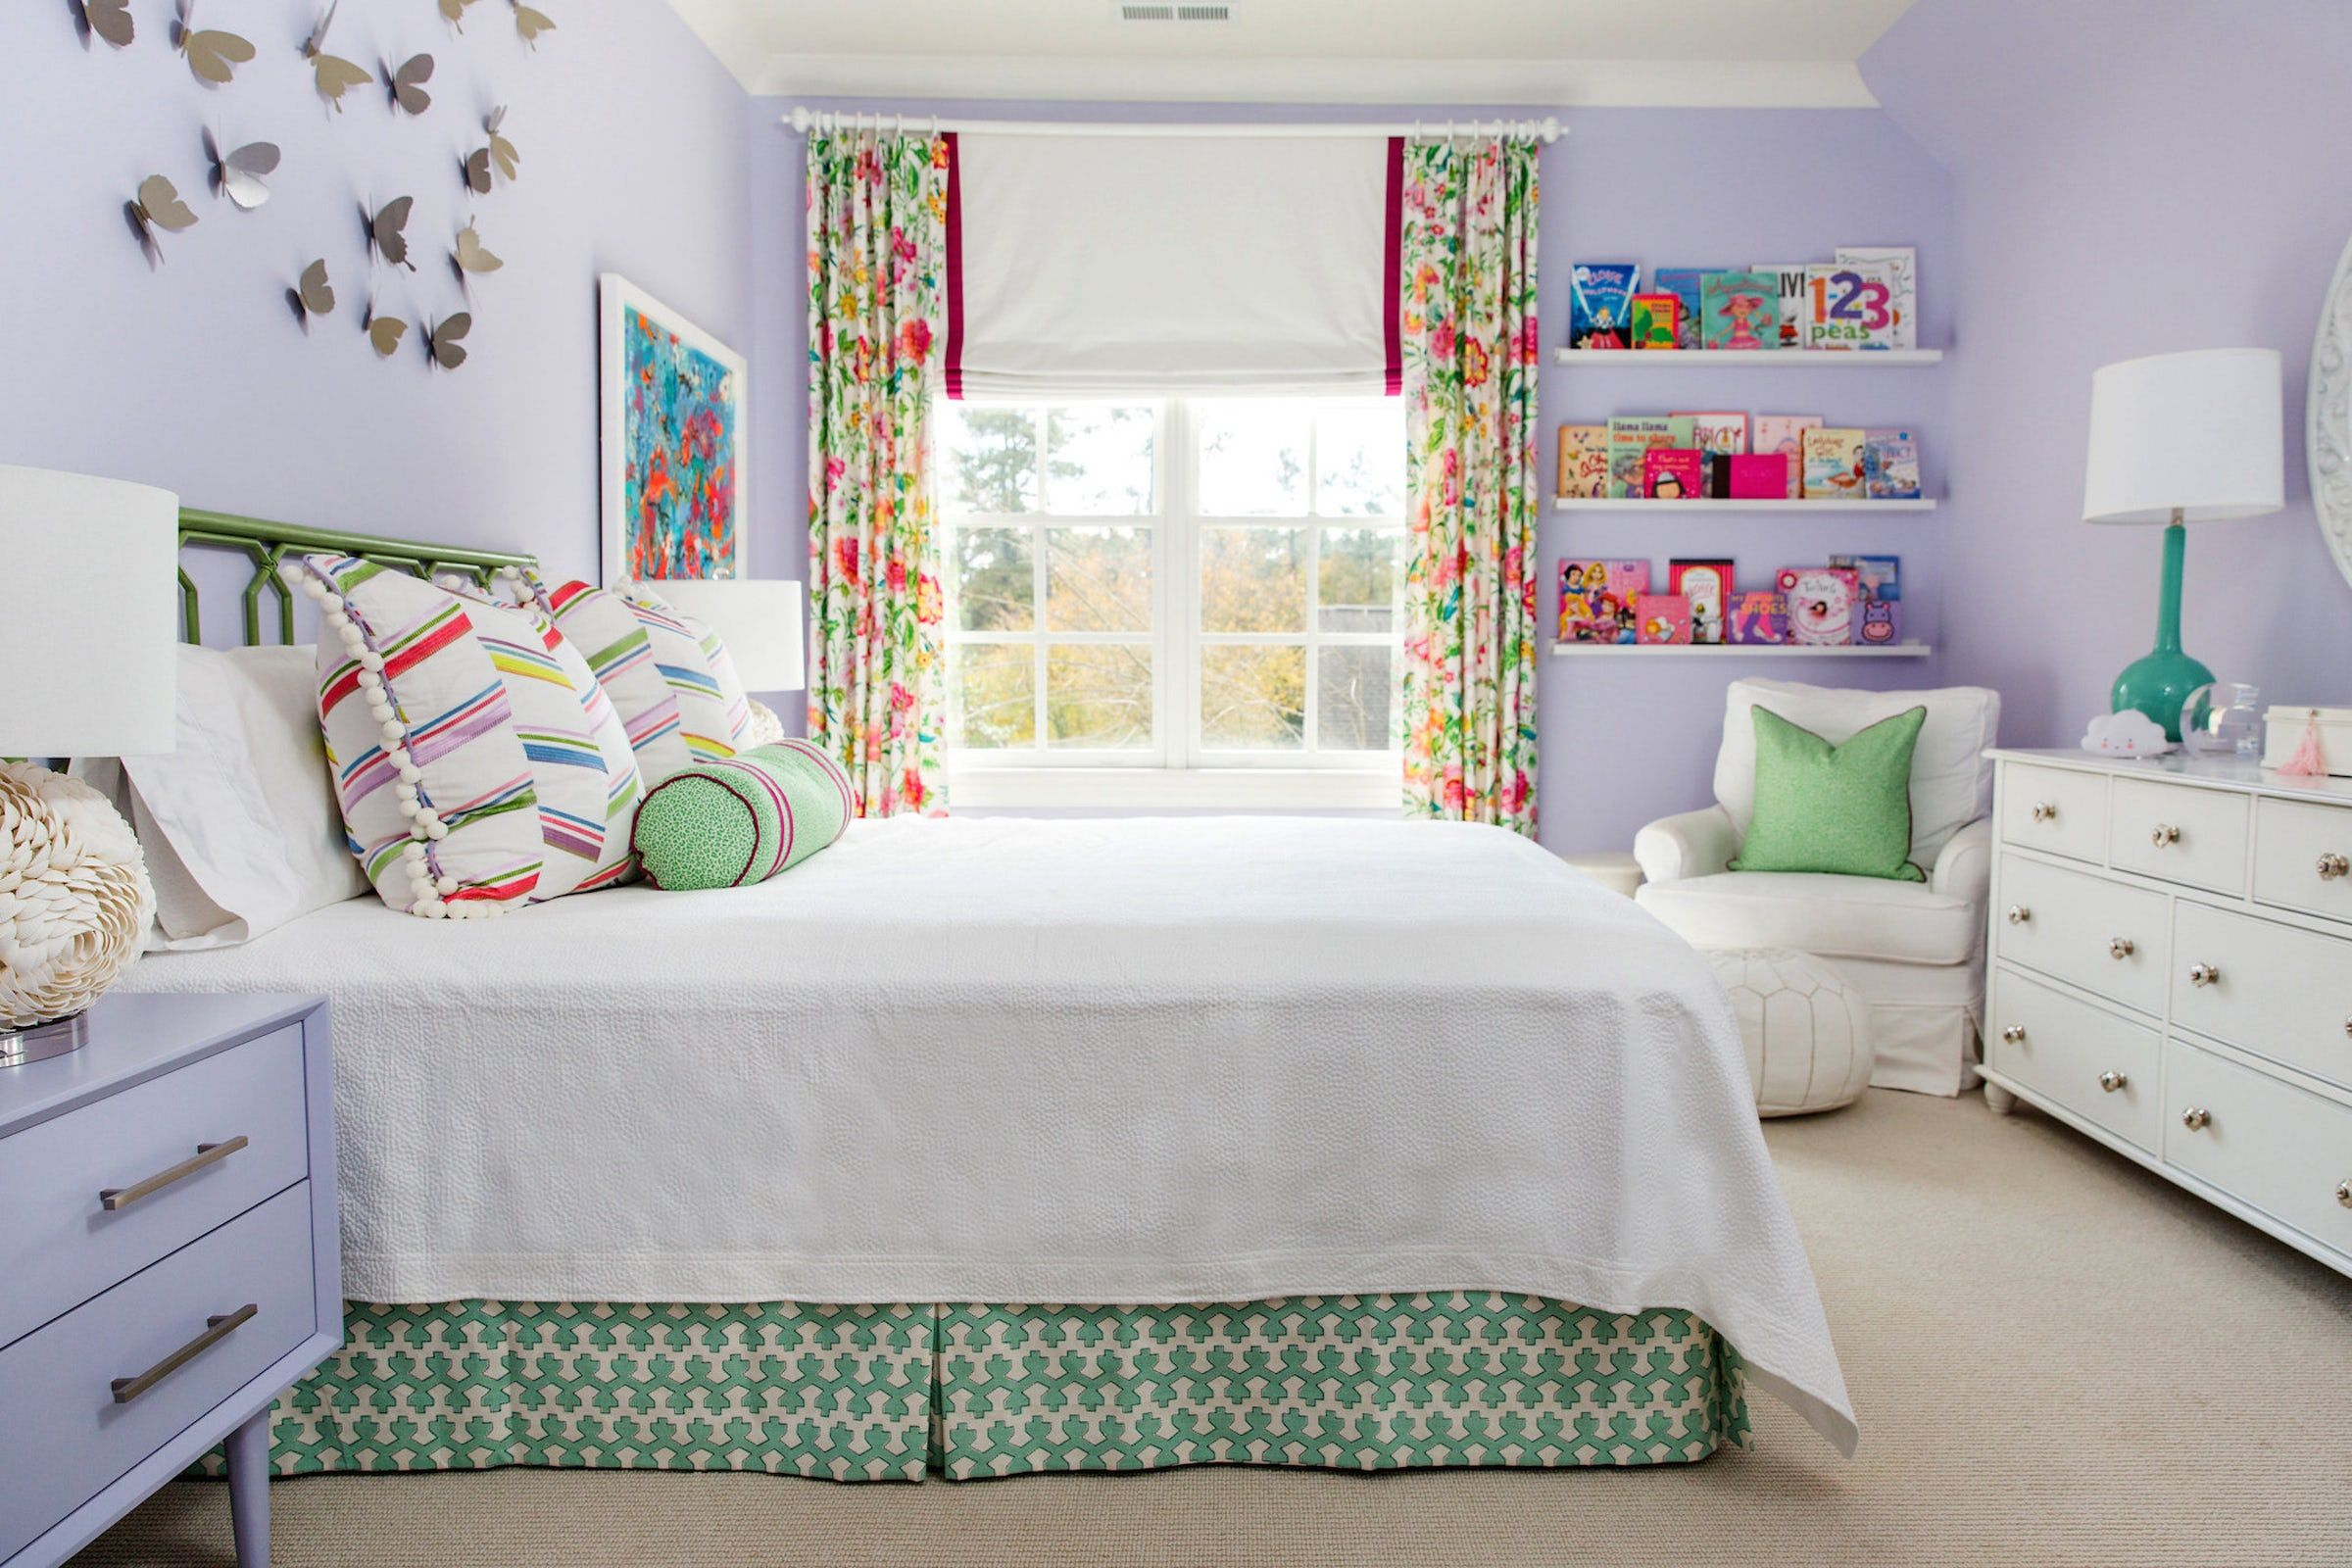 15 creative girls room ideas how to decorate a girl s bedroom rh elledecor com